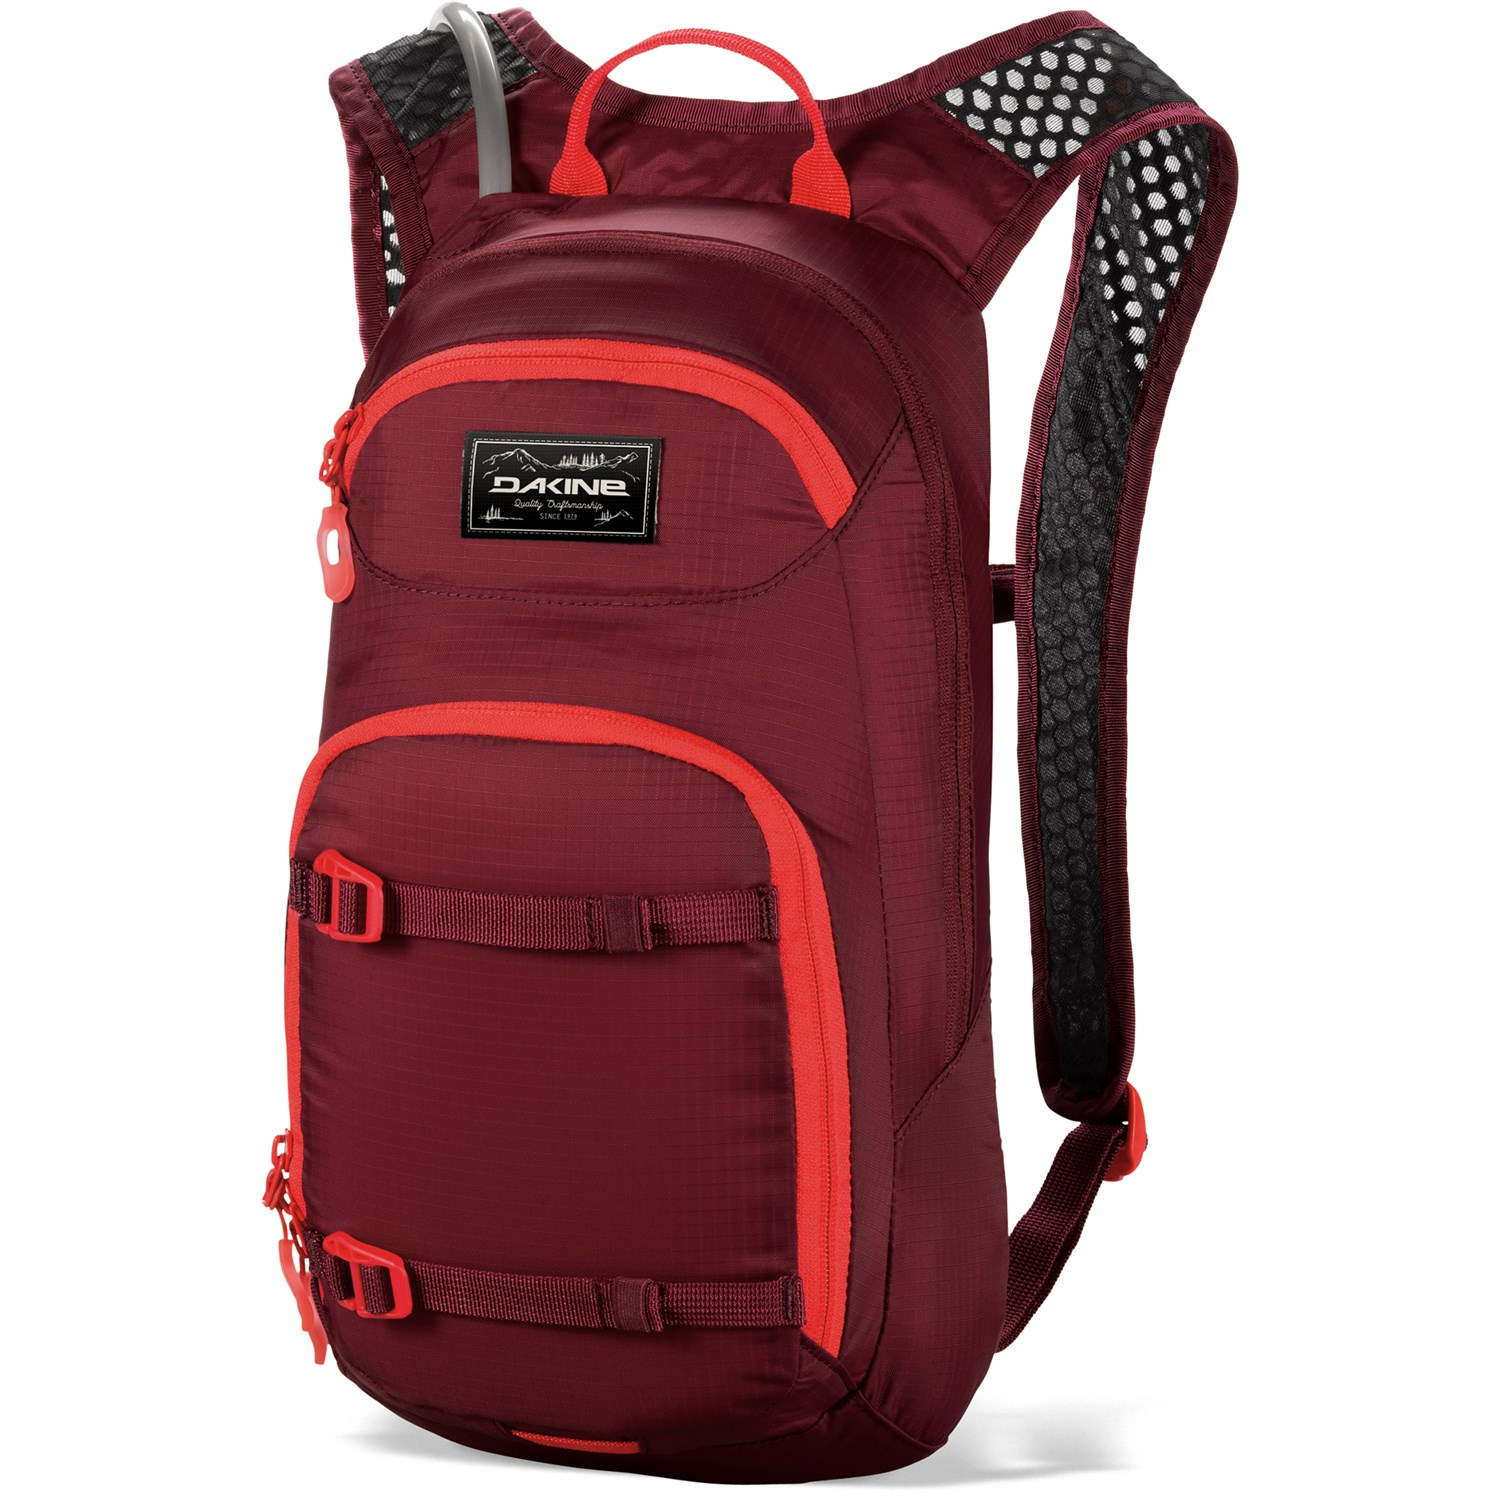 Women's Dakine Backpacks